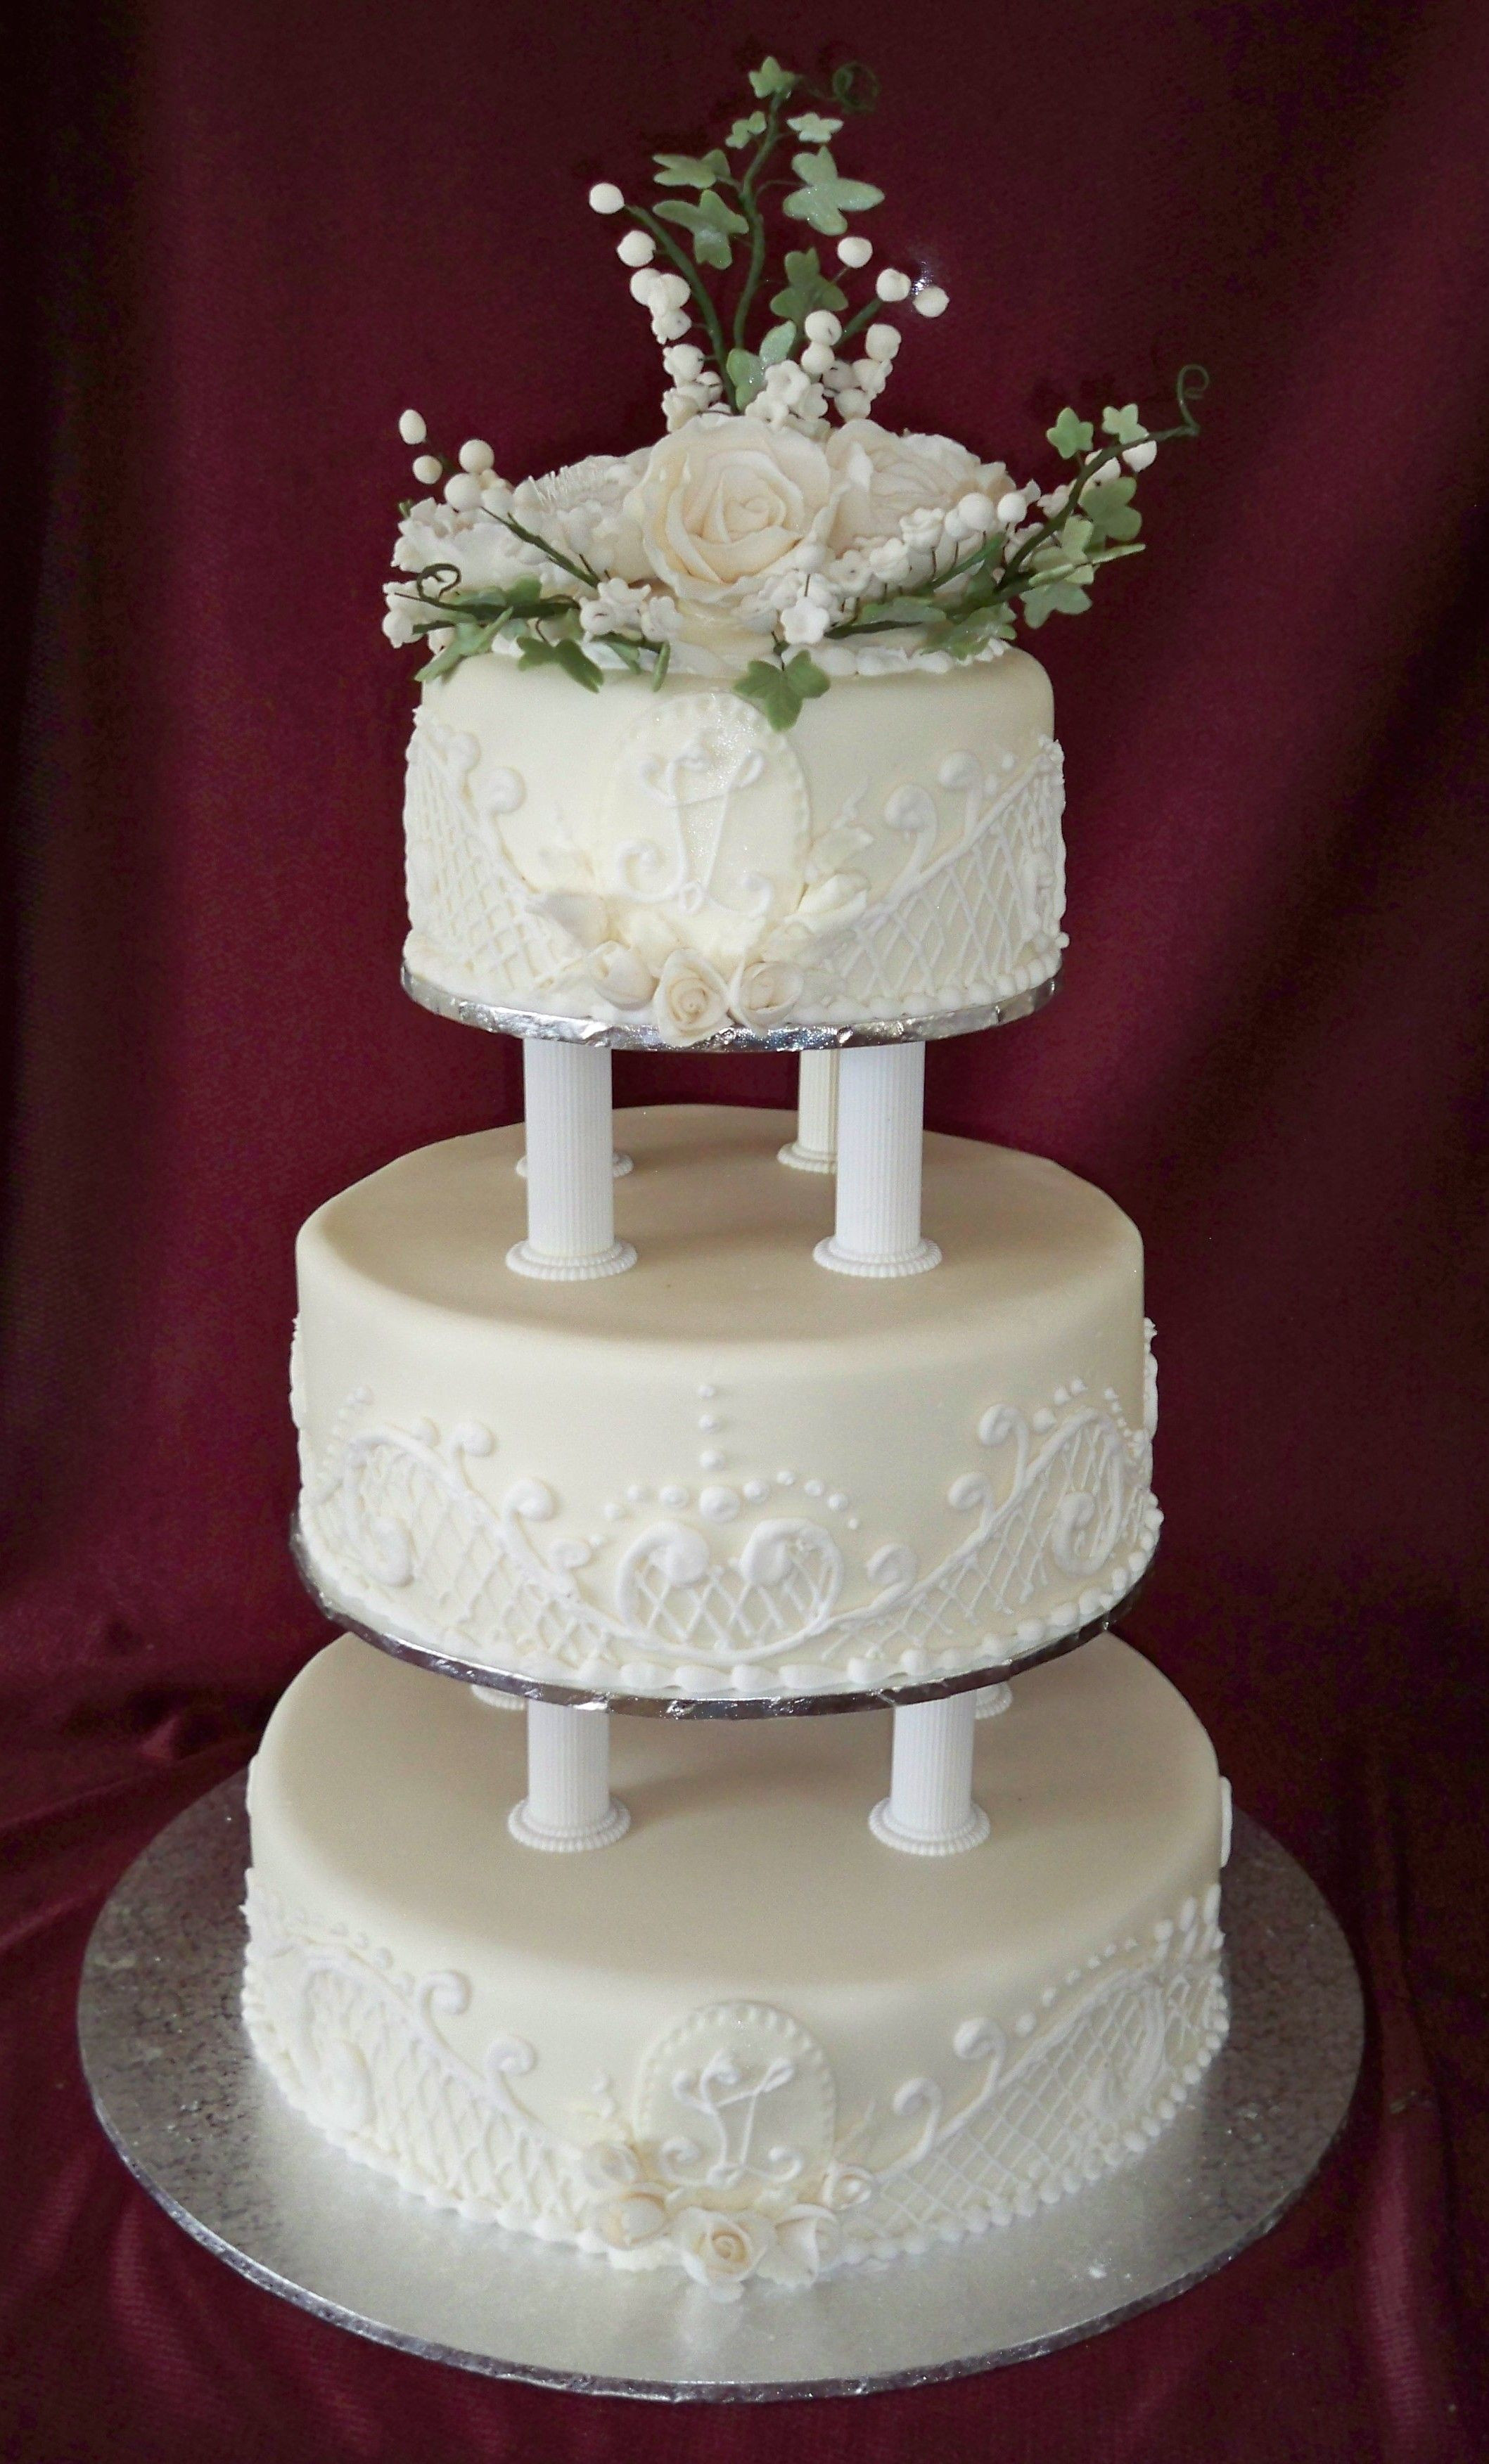 Tiered Wedding Cakes  3 tier round traditional wedding cake with lace piping and